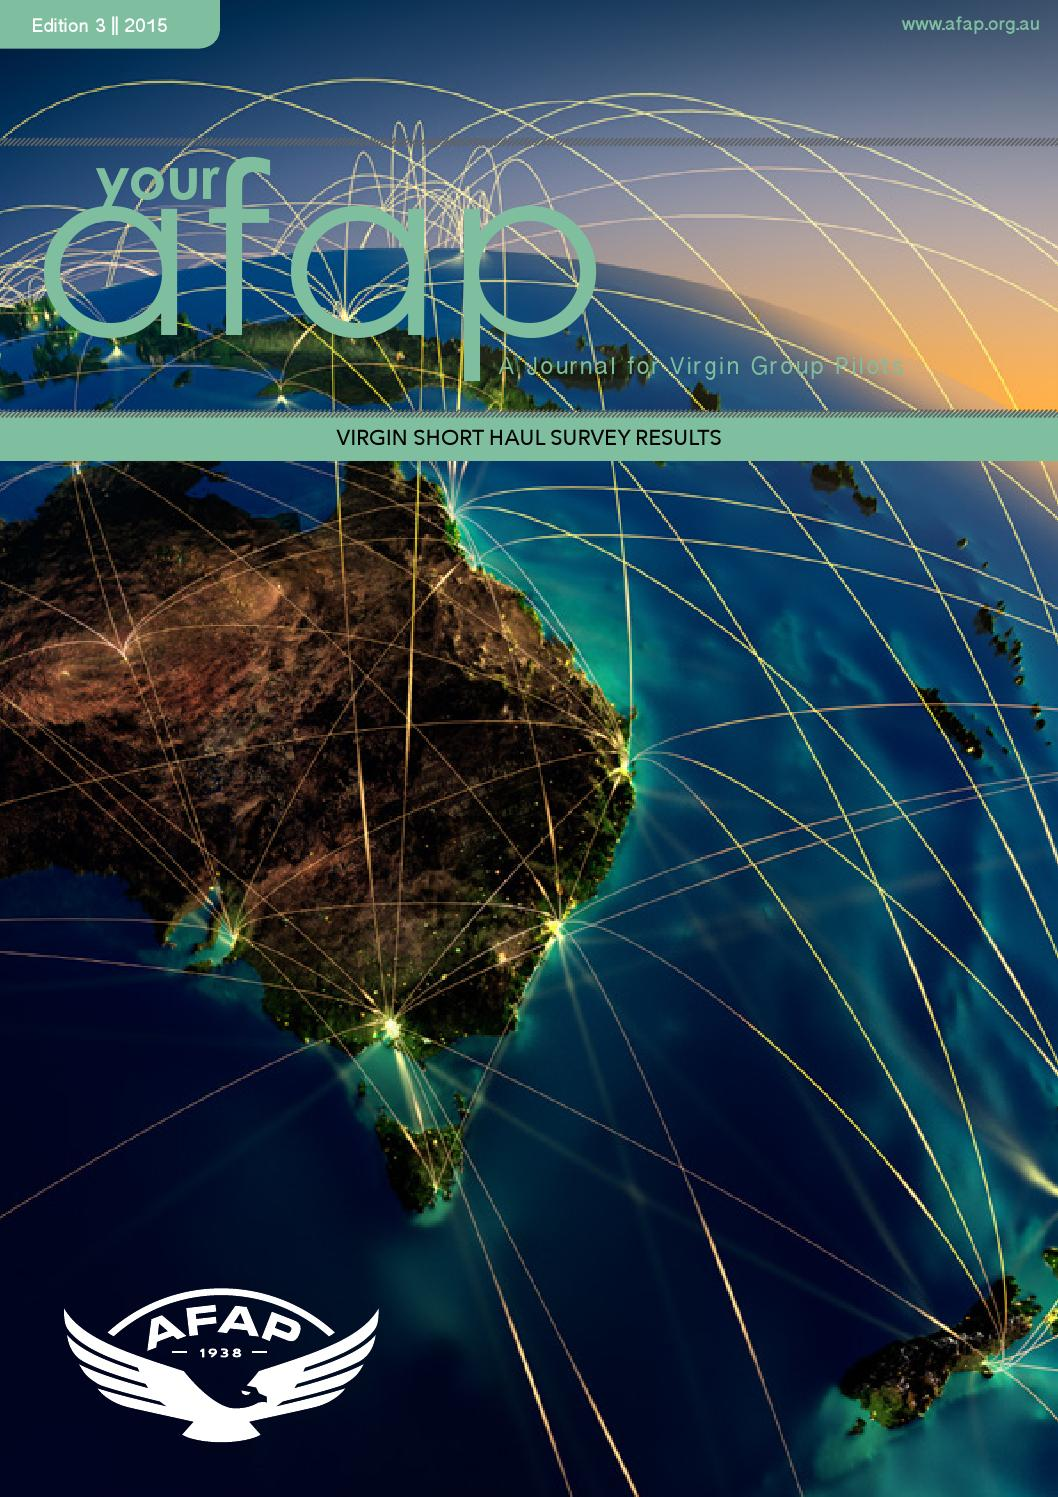 E3 2015 Your AFAP by Australian Federation of Air Pilots - issuu